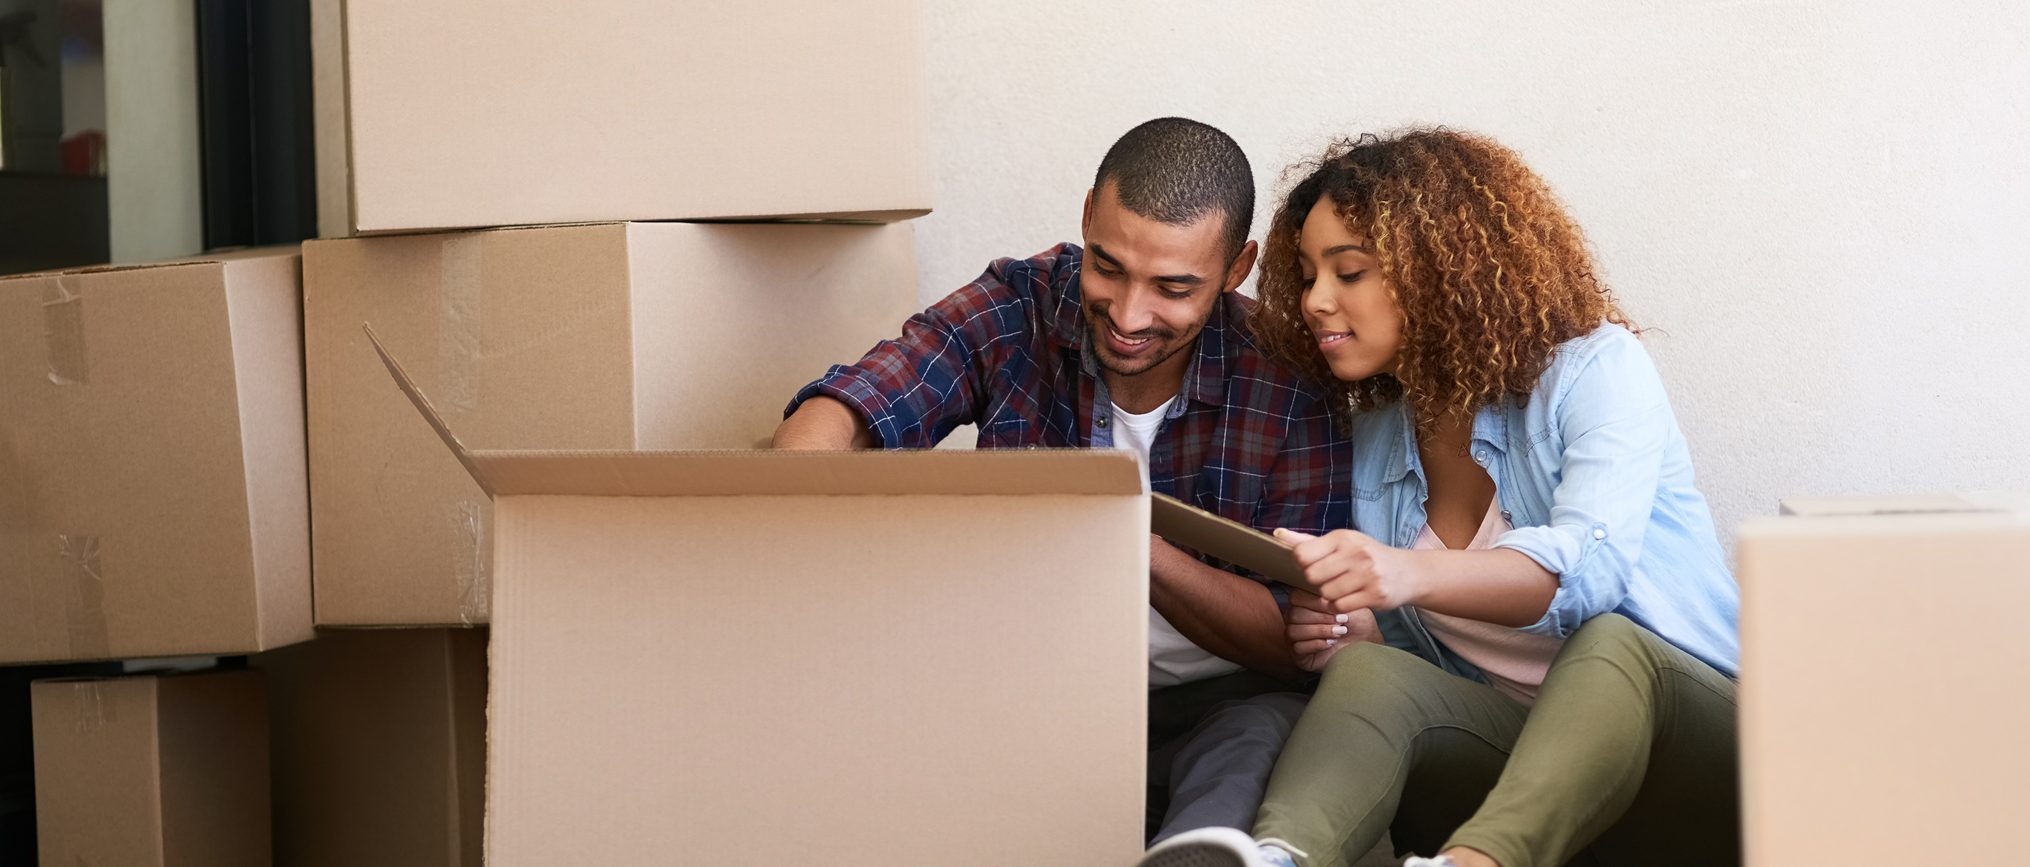 Online checking gives you one less thing to worry about during your move